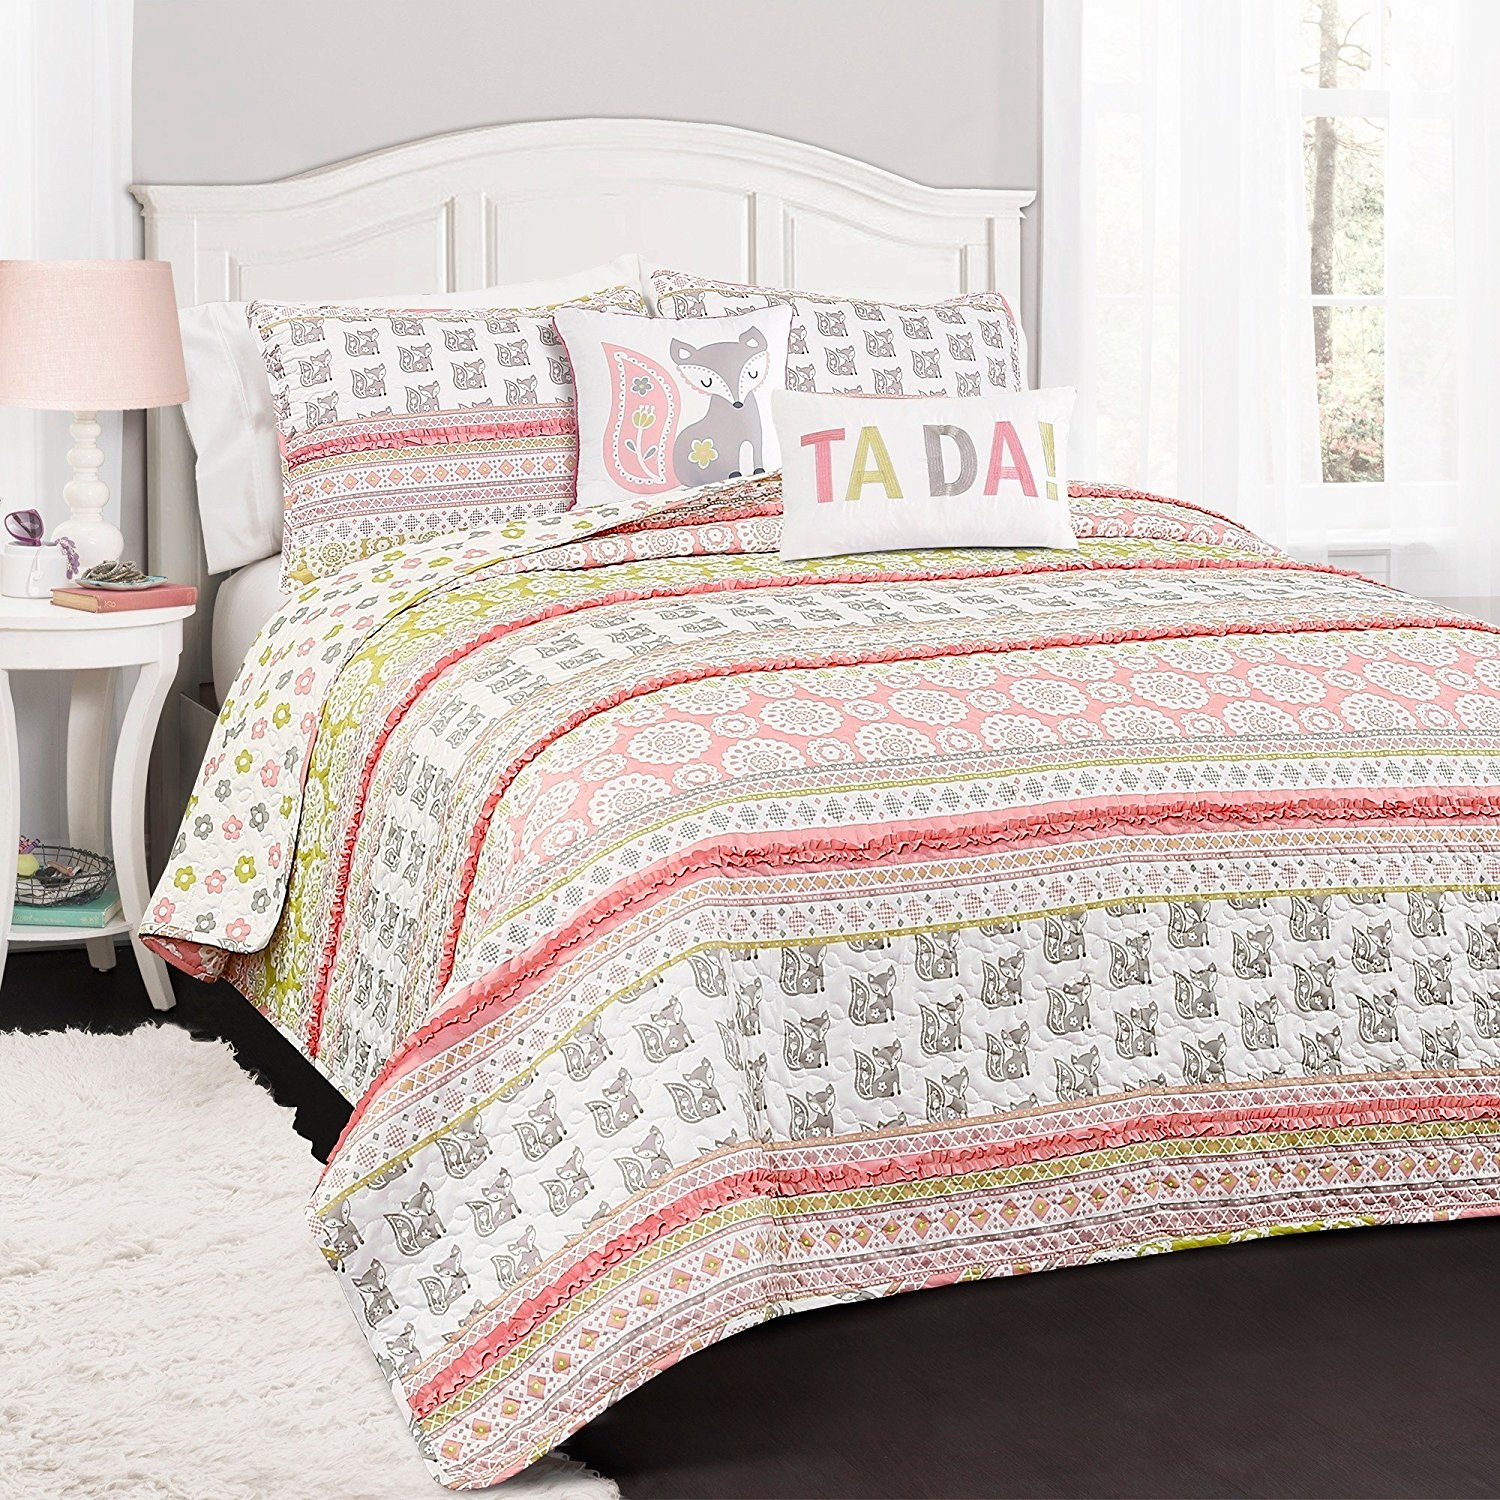 LO 4 Piece Girls Pink Green White Grey Foxy Fox Themed Quilt Twin Set, Cute Girly Horizontal Stripe Paisley Floral Bedding, Multi All Over Geometric Flower Rufle Pattern, Gray, Polyester